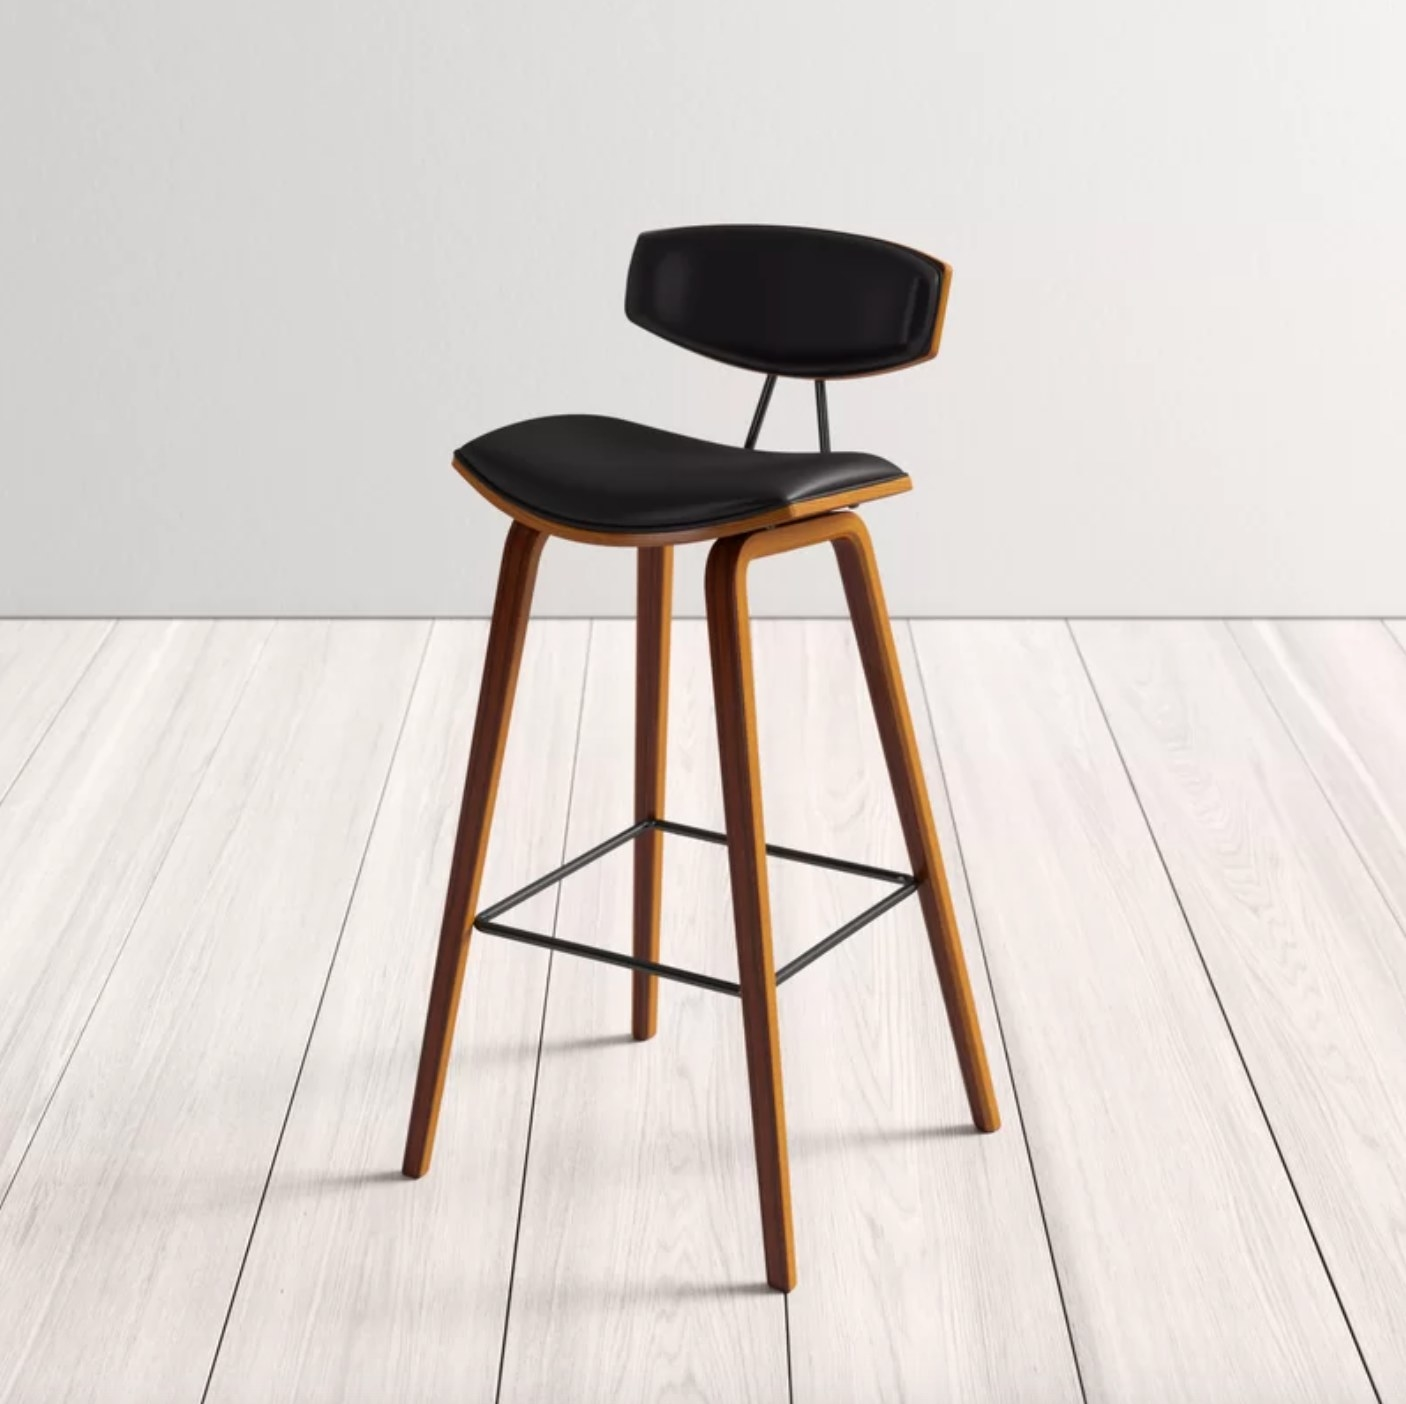 The upholstered stool in black with wood legs